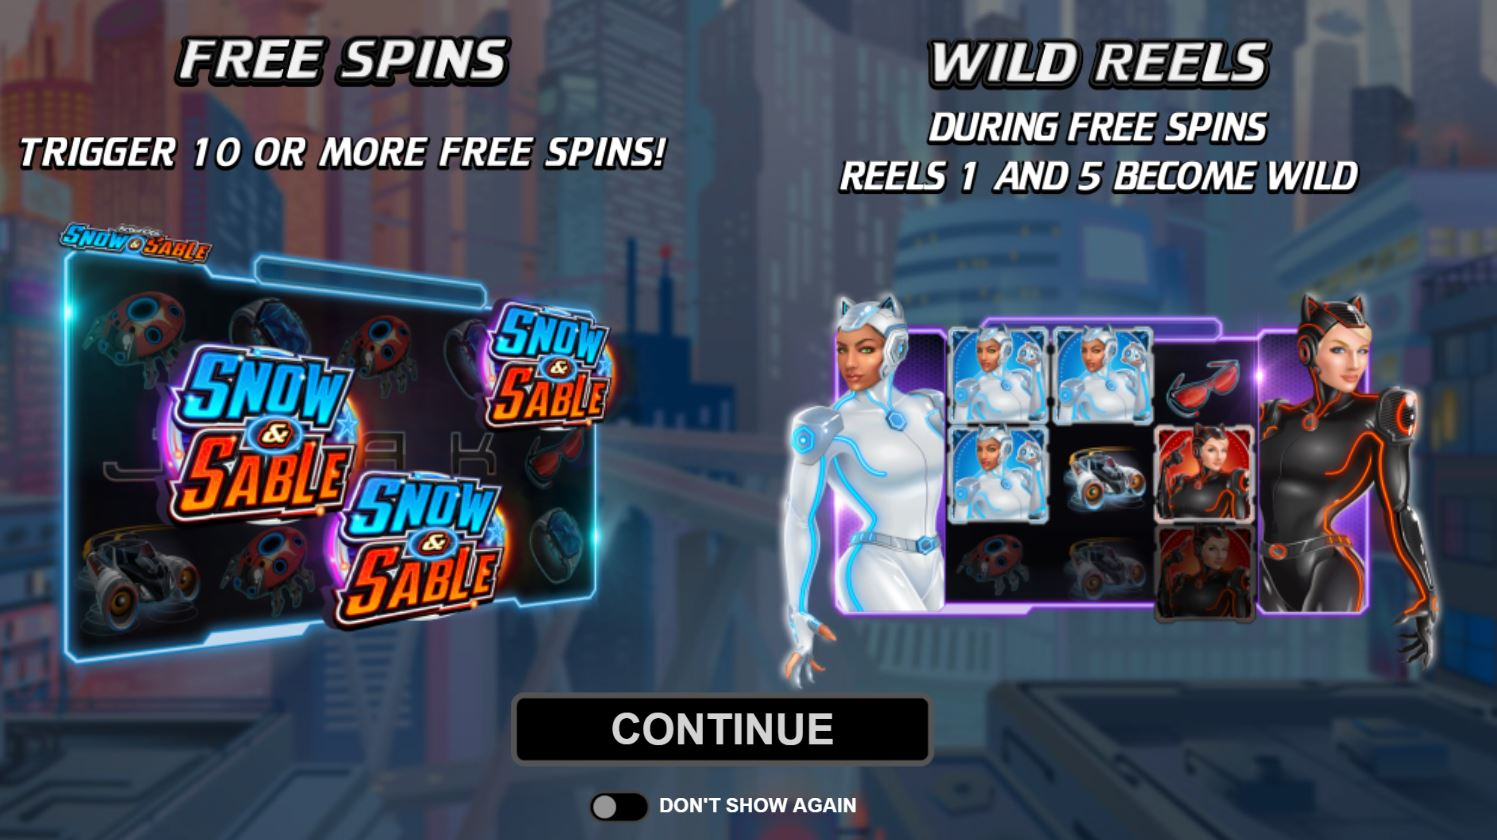 Free-Spin-Wild-Reels-Action-Ops-Snow-Sable